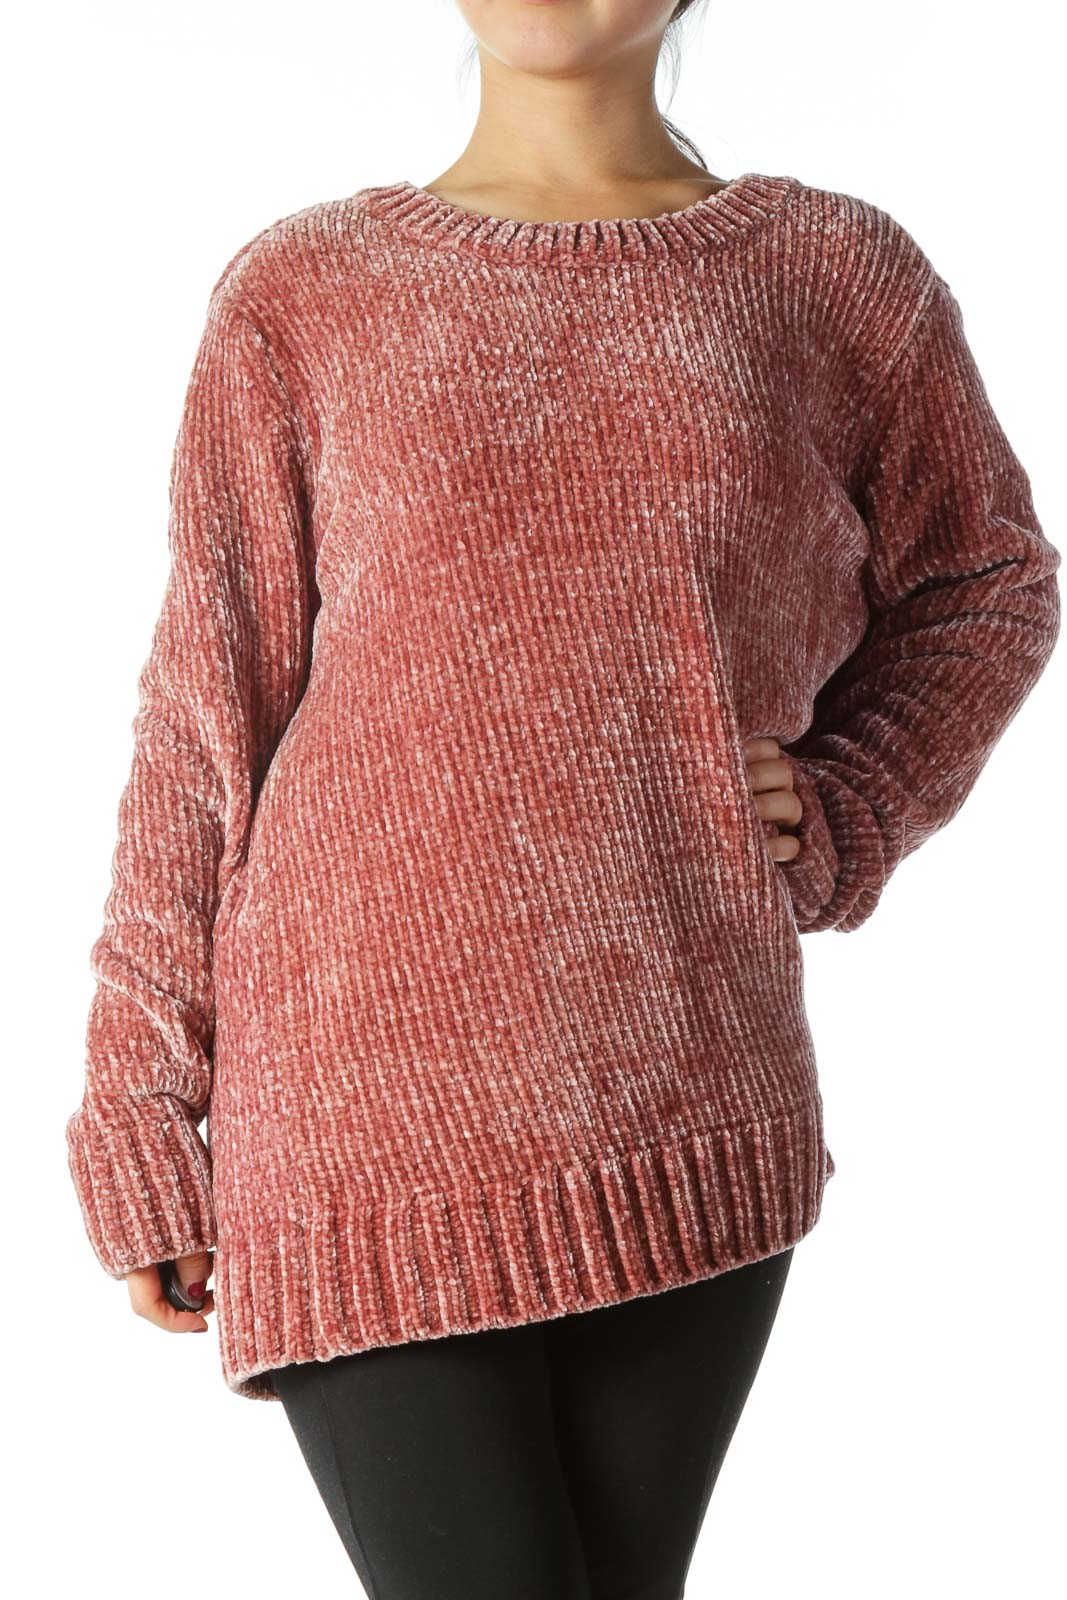 Pink Oversized Knit Sweater